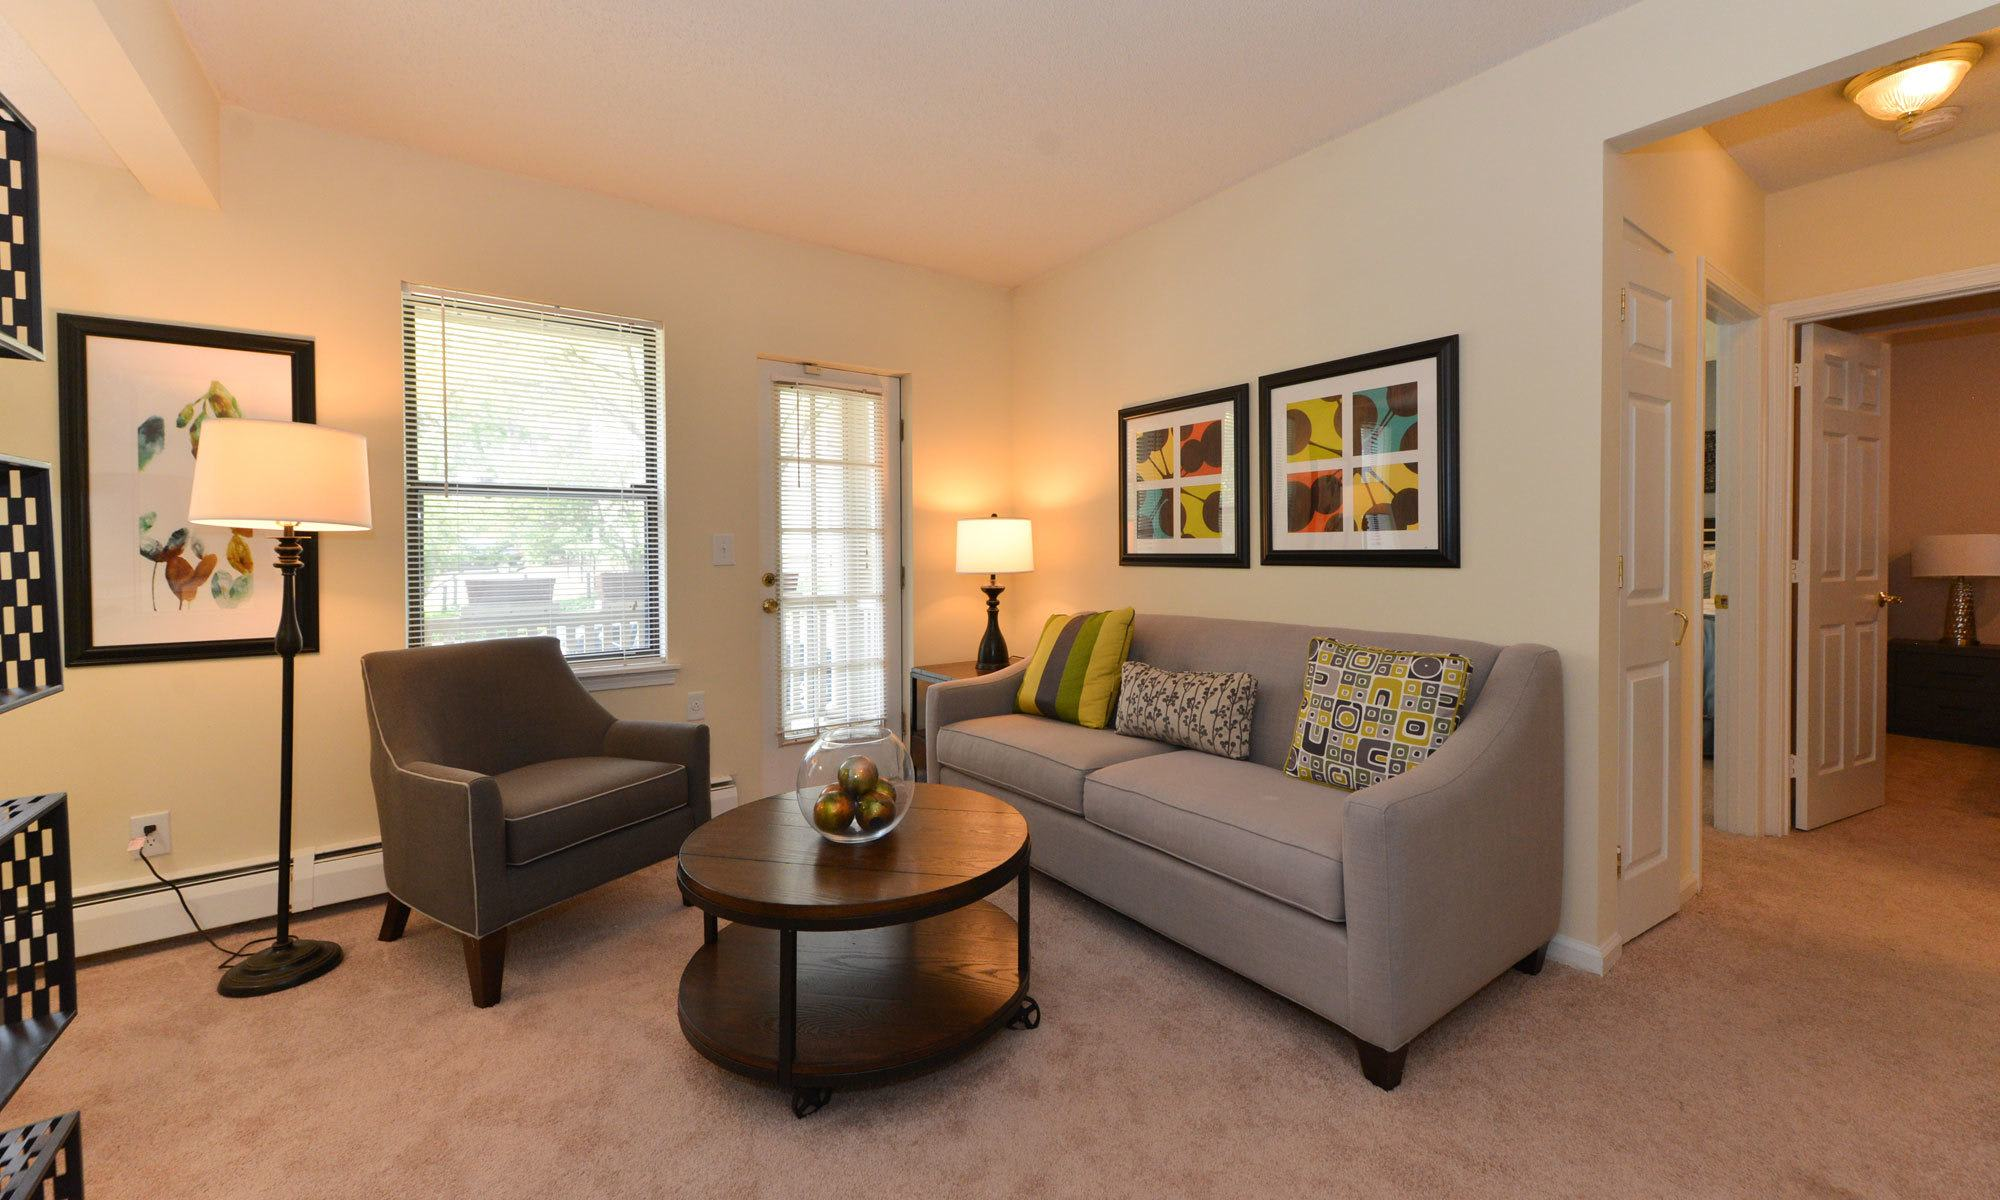 West end hartford ct apartments for rent clemens place - 1 bedroom apartments in hartford ct ...